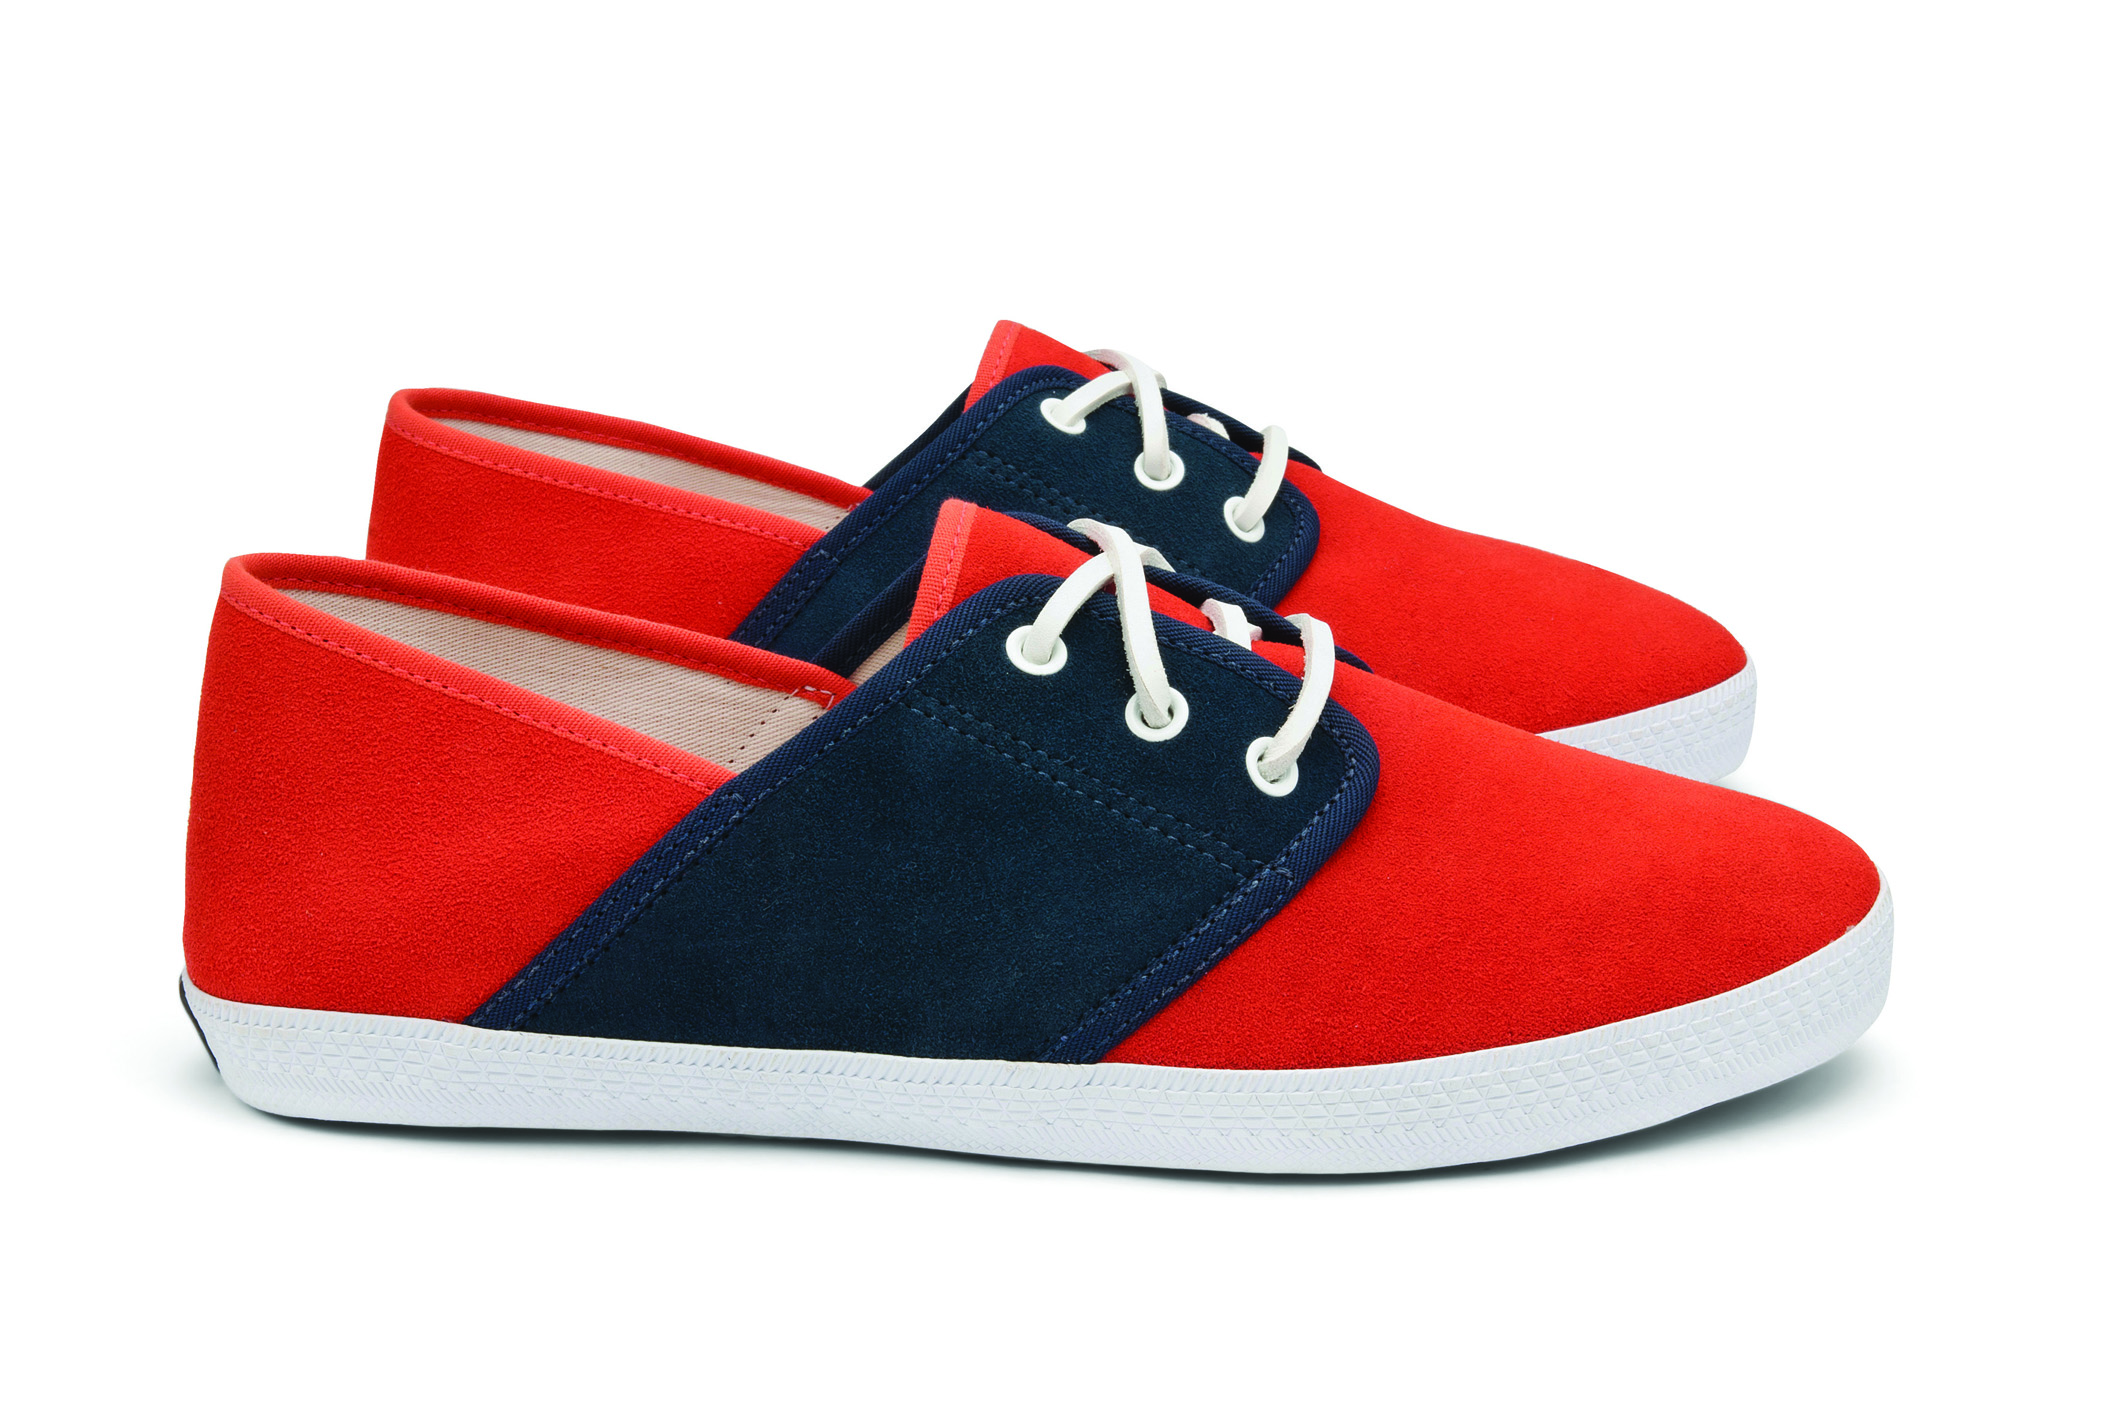 Veja Mediterran+®e Suede Geranium Navy Lateral Par1 Veja Ethical Shoes and the Observer Ethical Awards